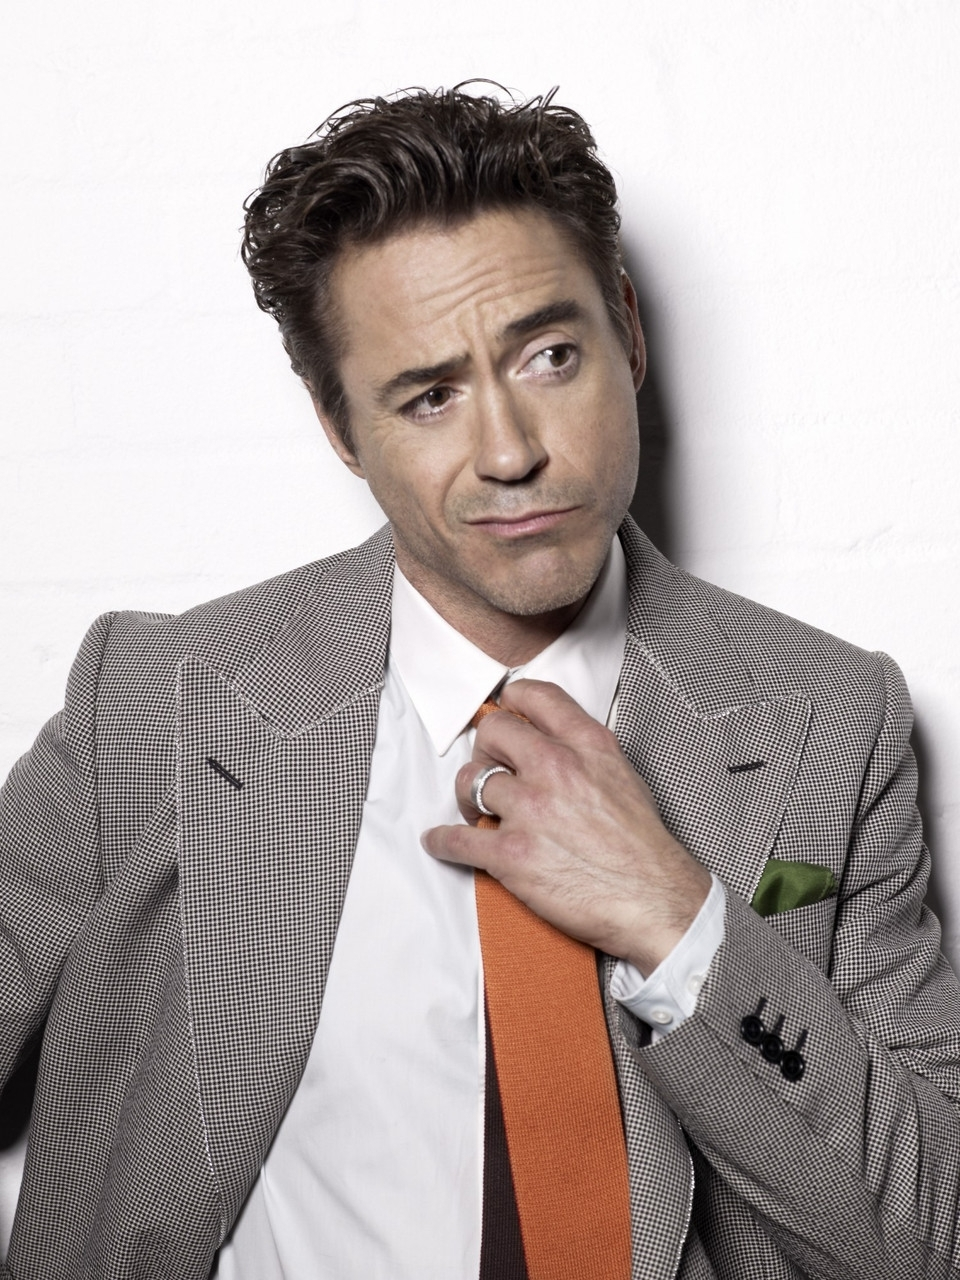 robert downey jr photo - photo #4